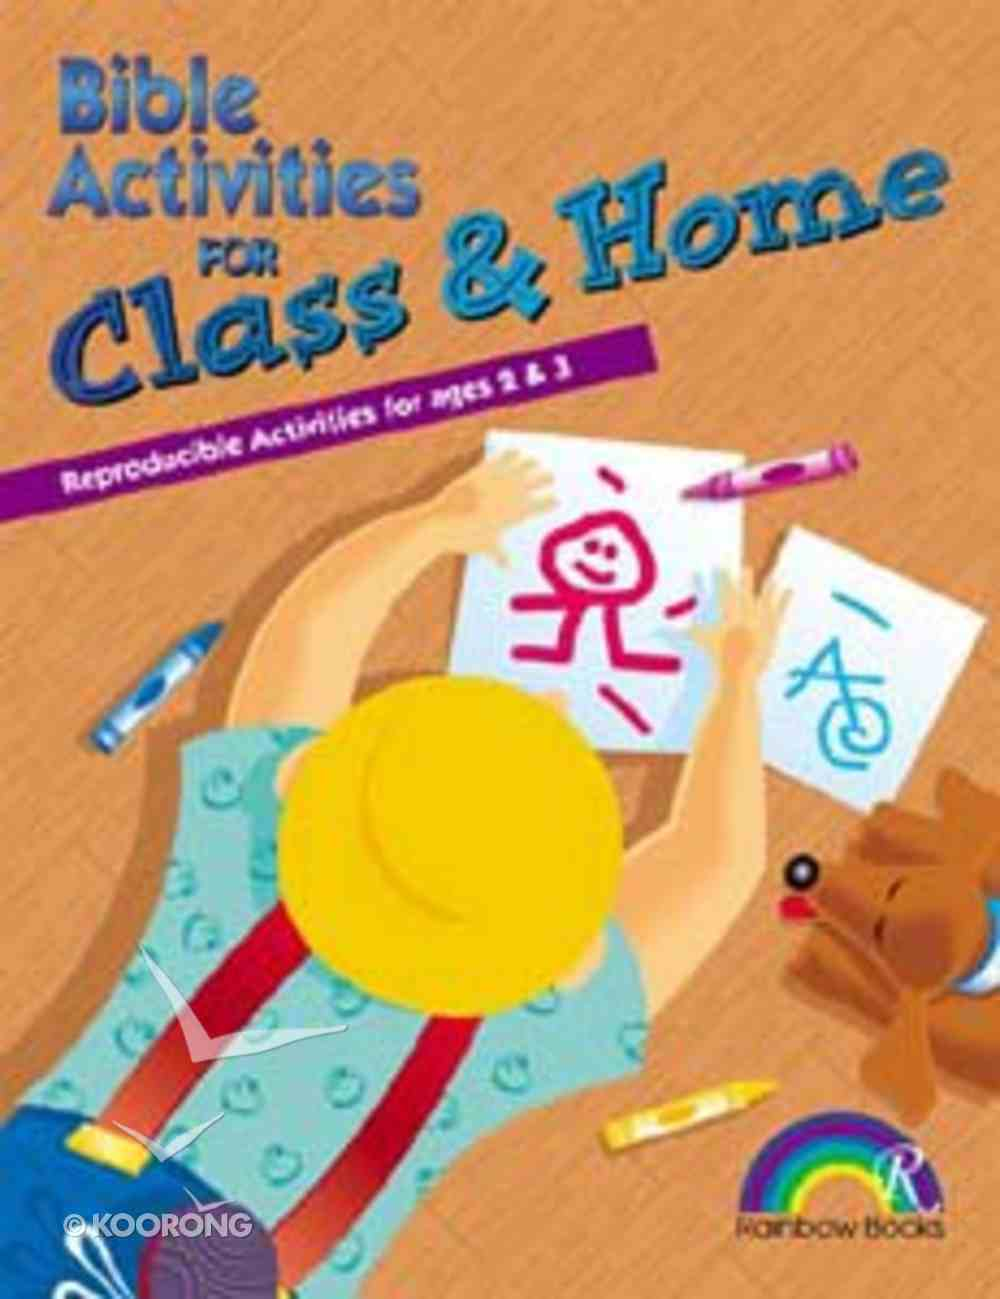 Bible Activities For Class & Home: Ages 2&3 (Reproducible) Paperback